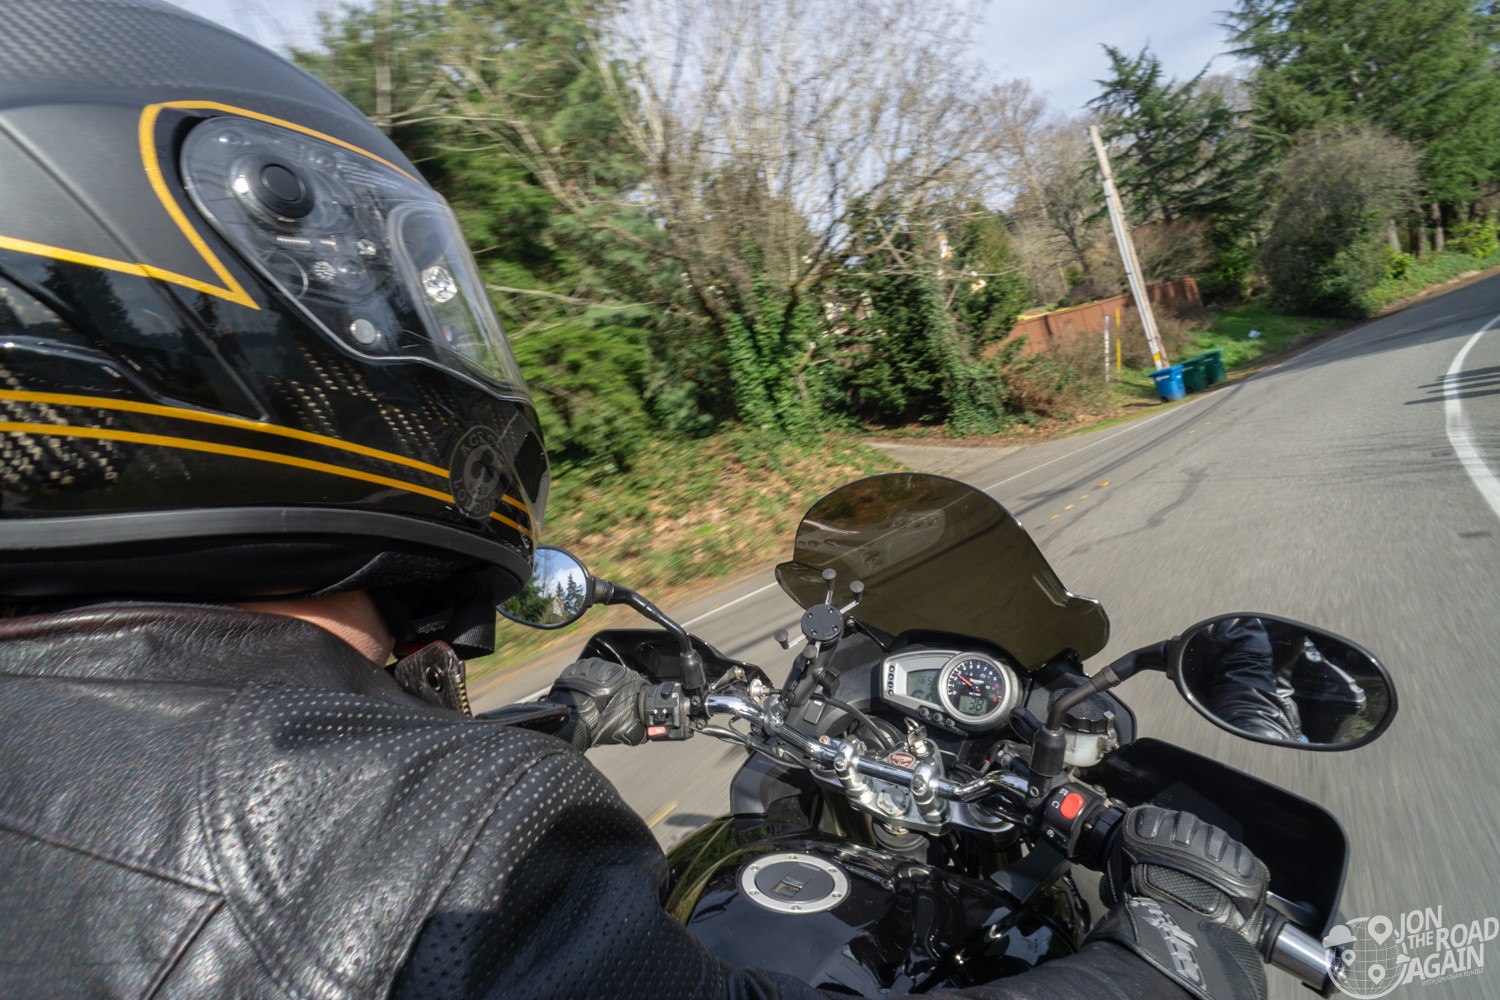 Riding motorcycles on Mercer Island